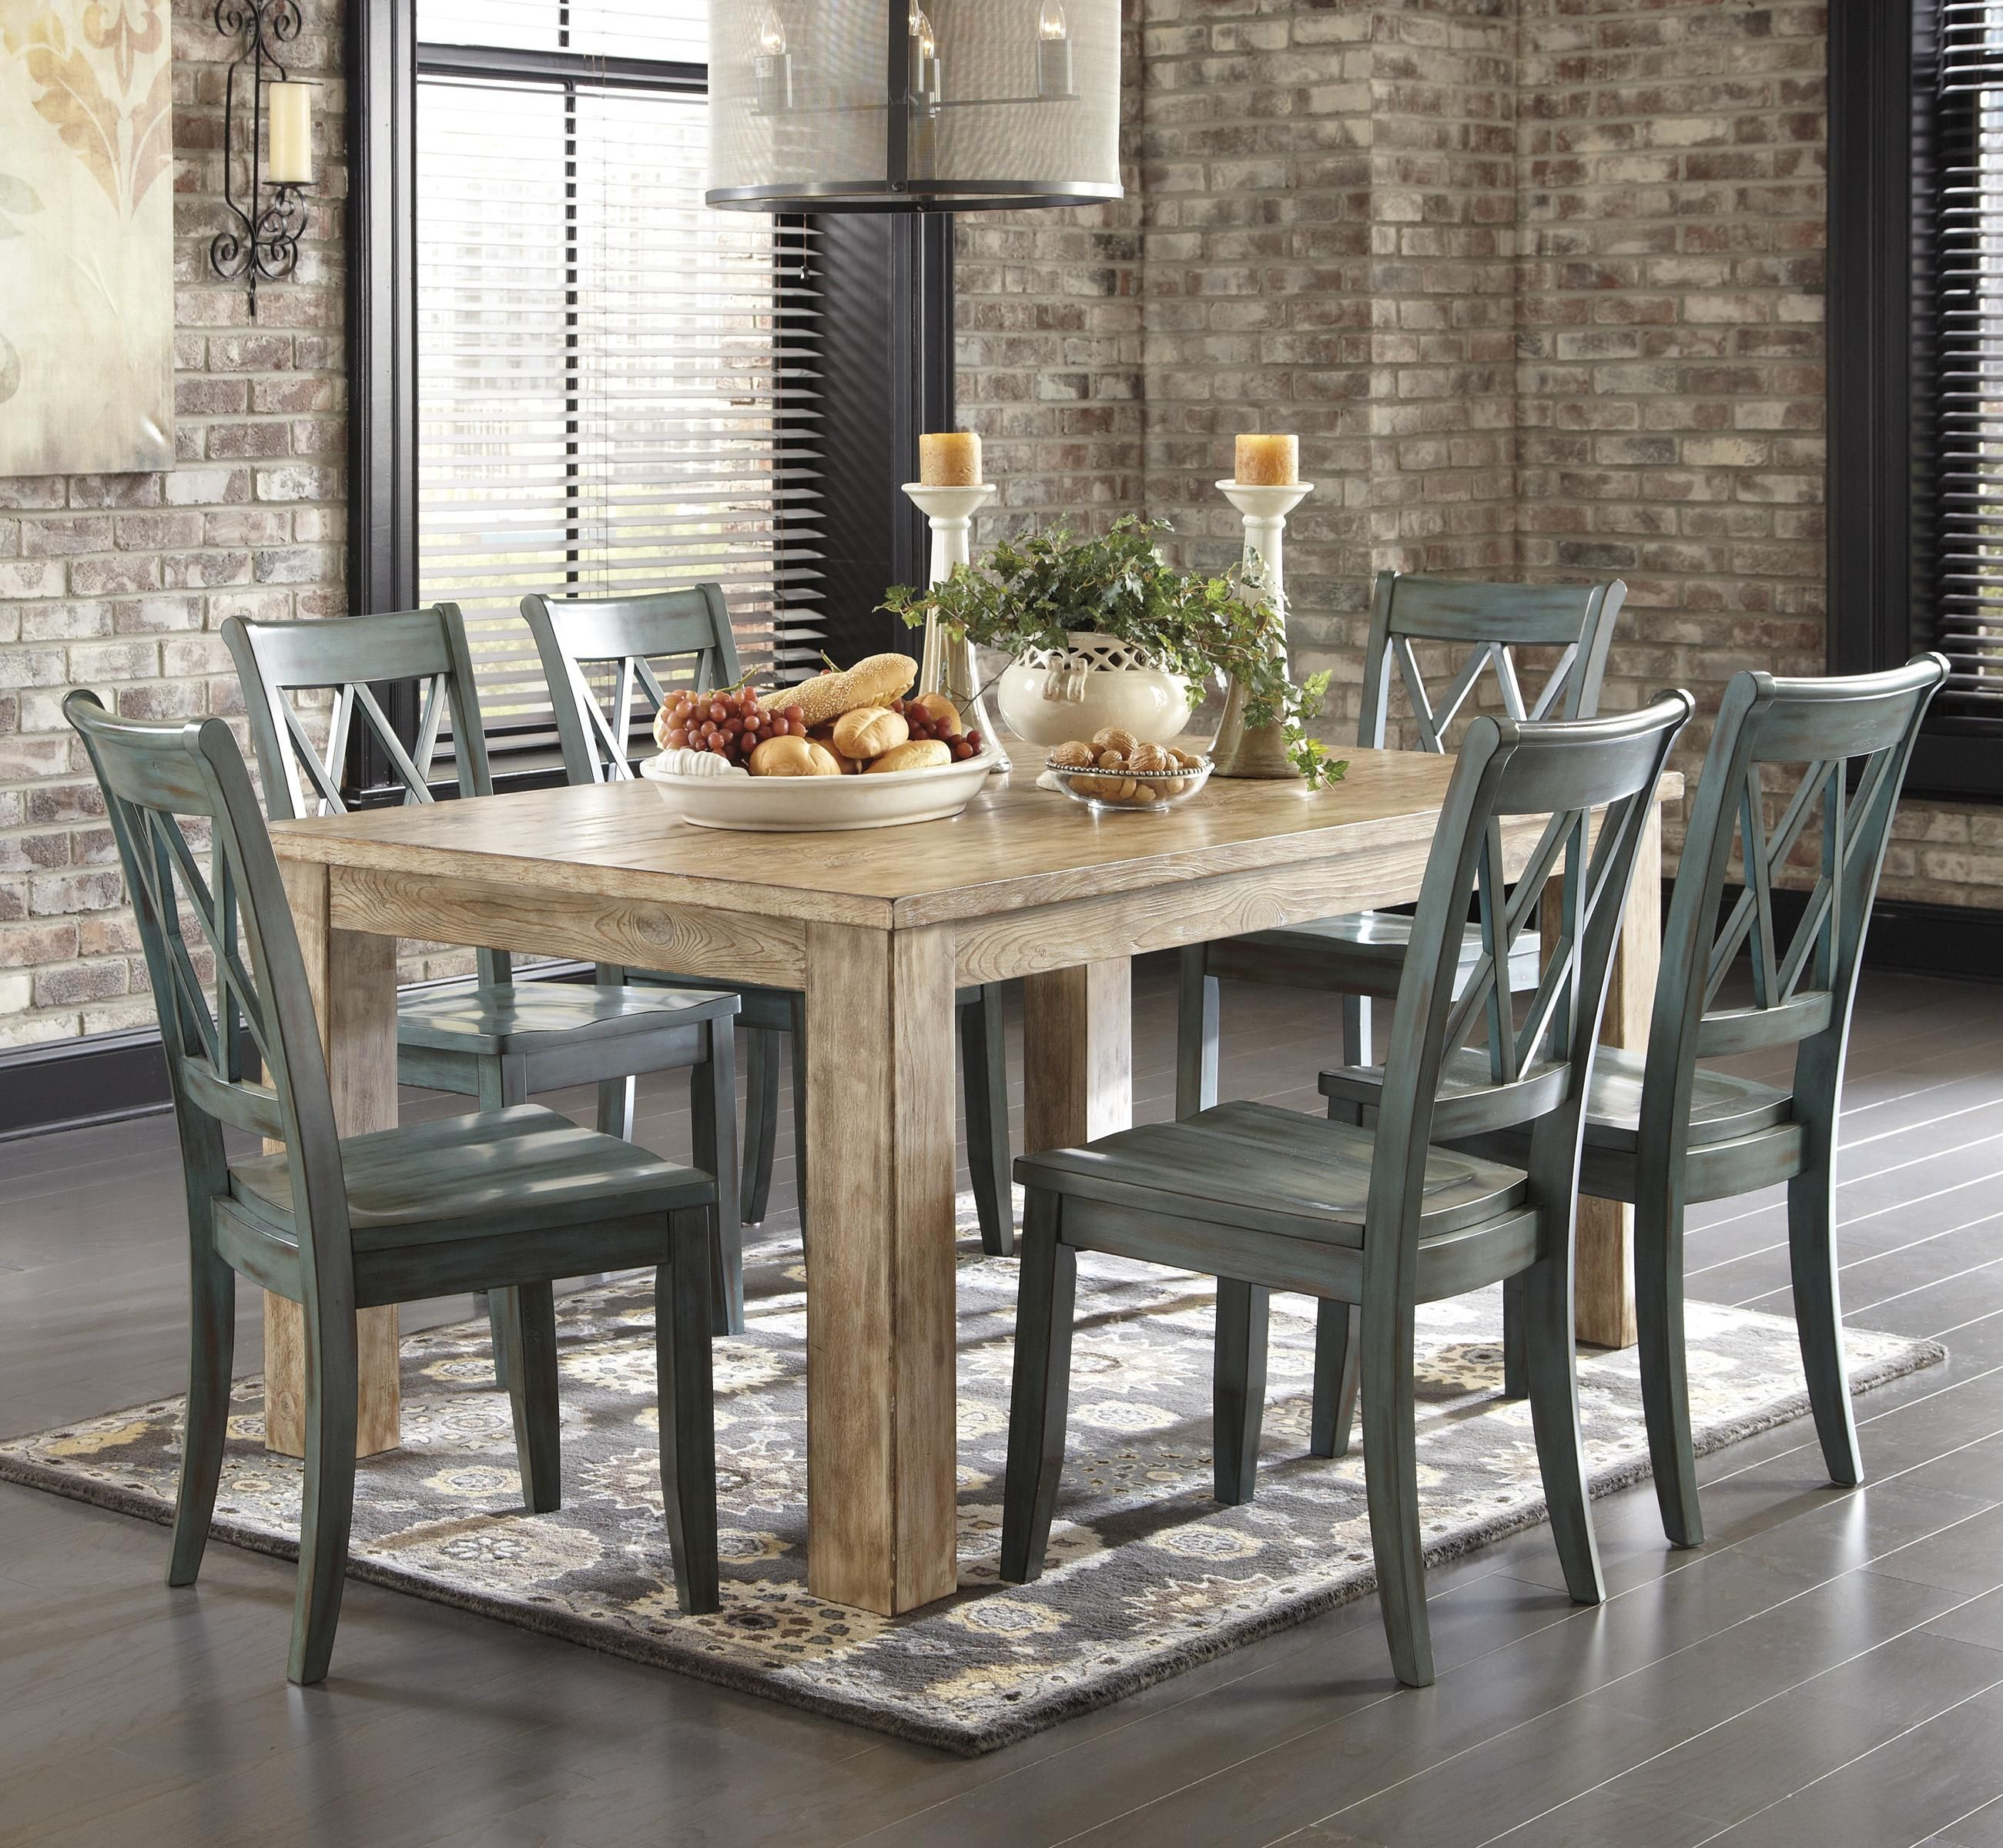 Kitchen Dining Room Sets You Ll Love: Just Purchased!! Mestler 7-Piece Table Set With Antique